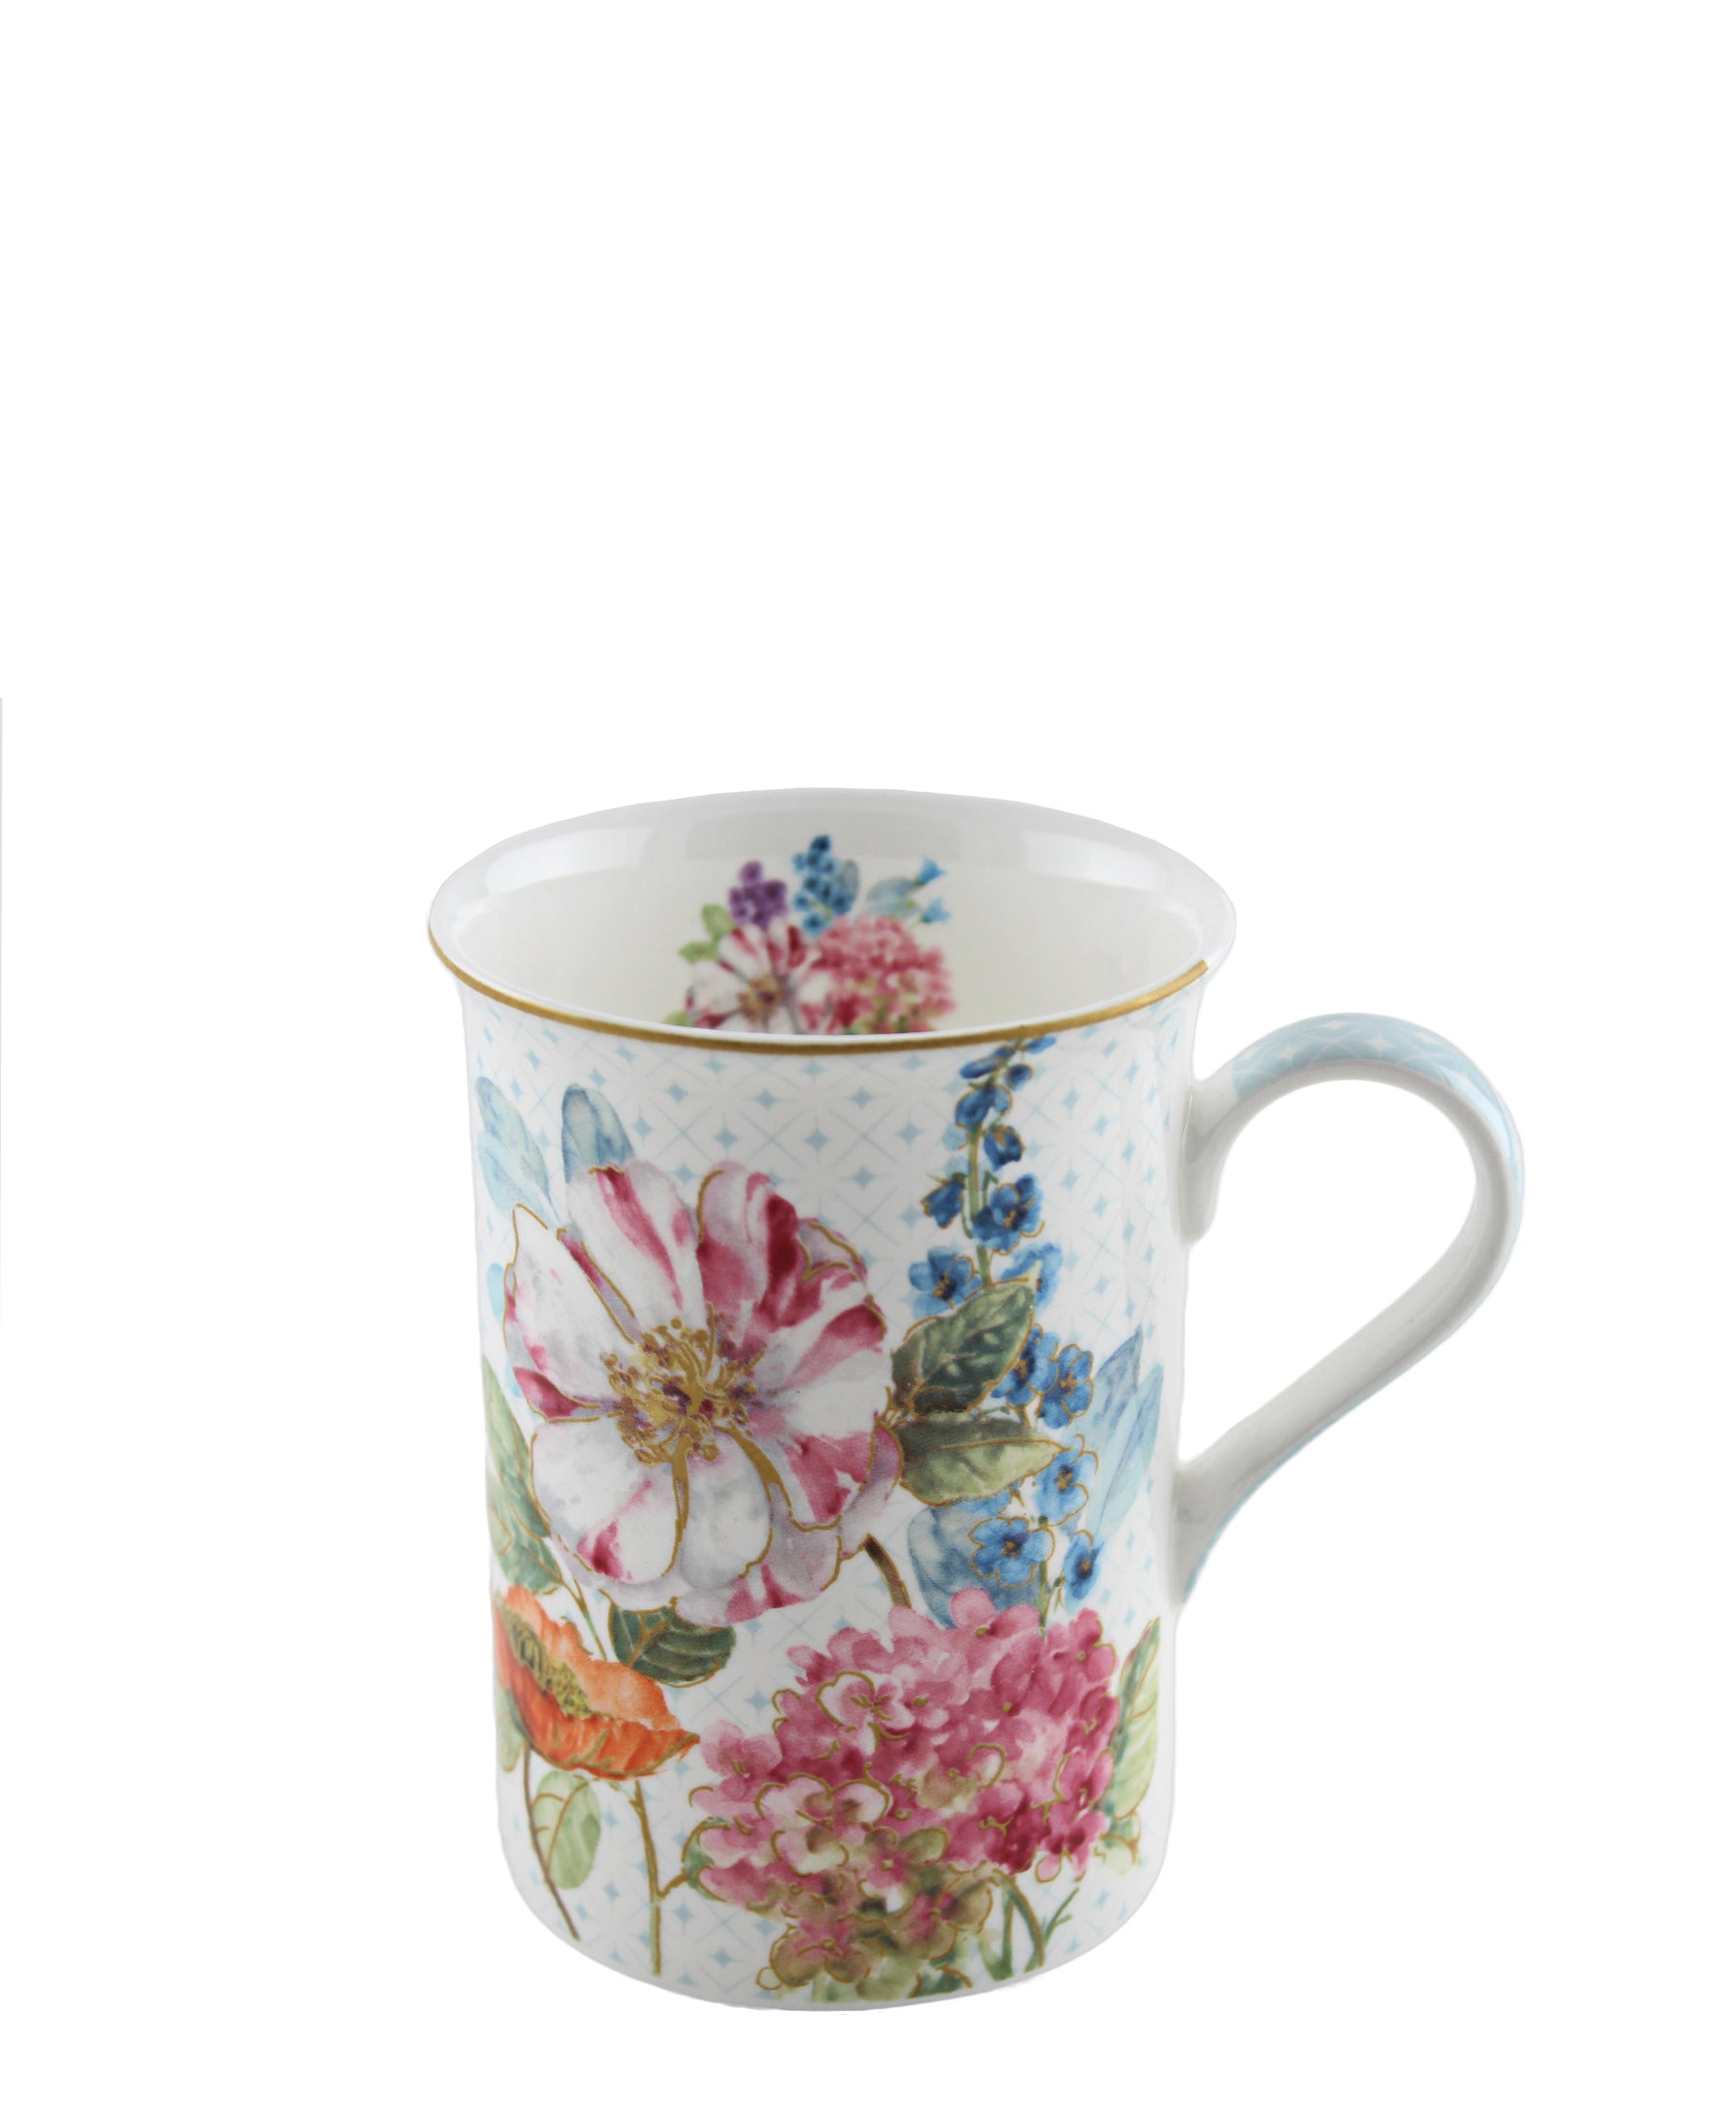 Cottage Flower Mug 250ML - Multi